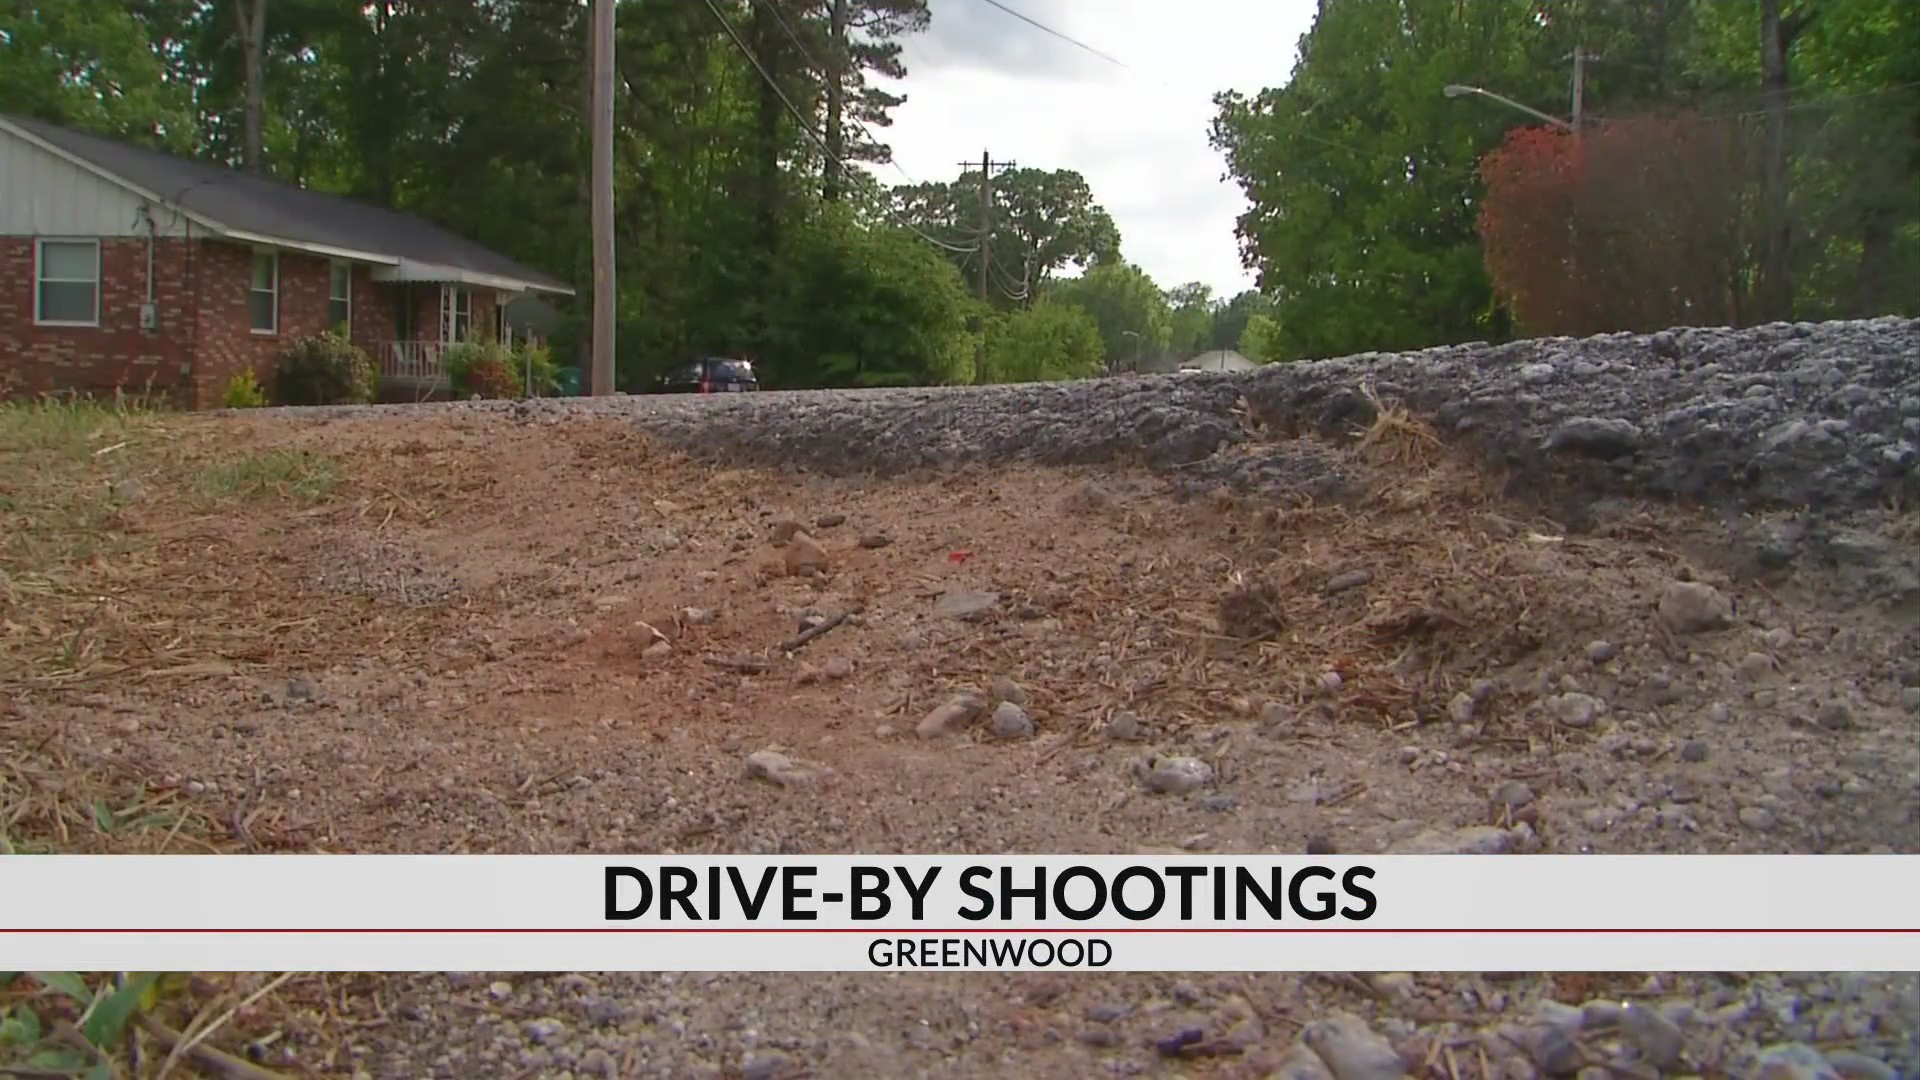 3 injured in 2 shooting incidents in Greenwood, police say